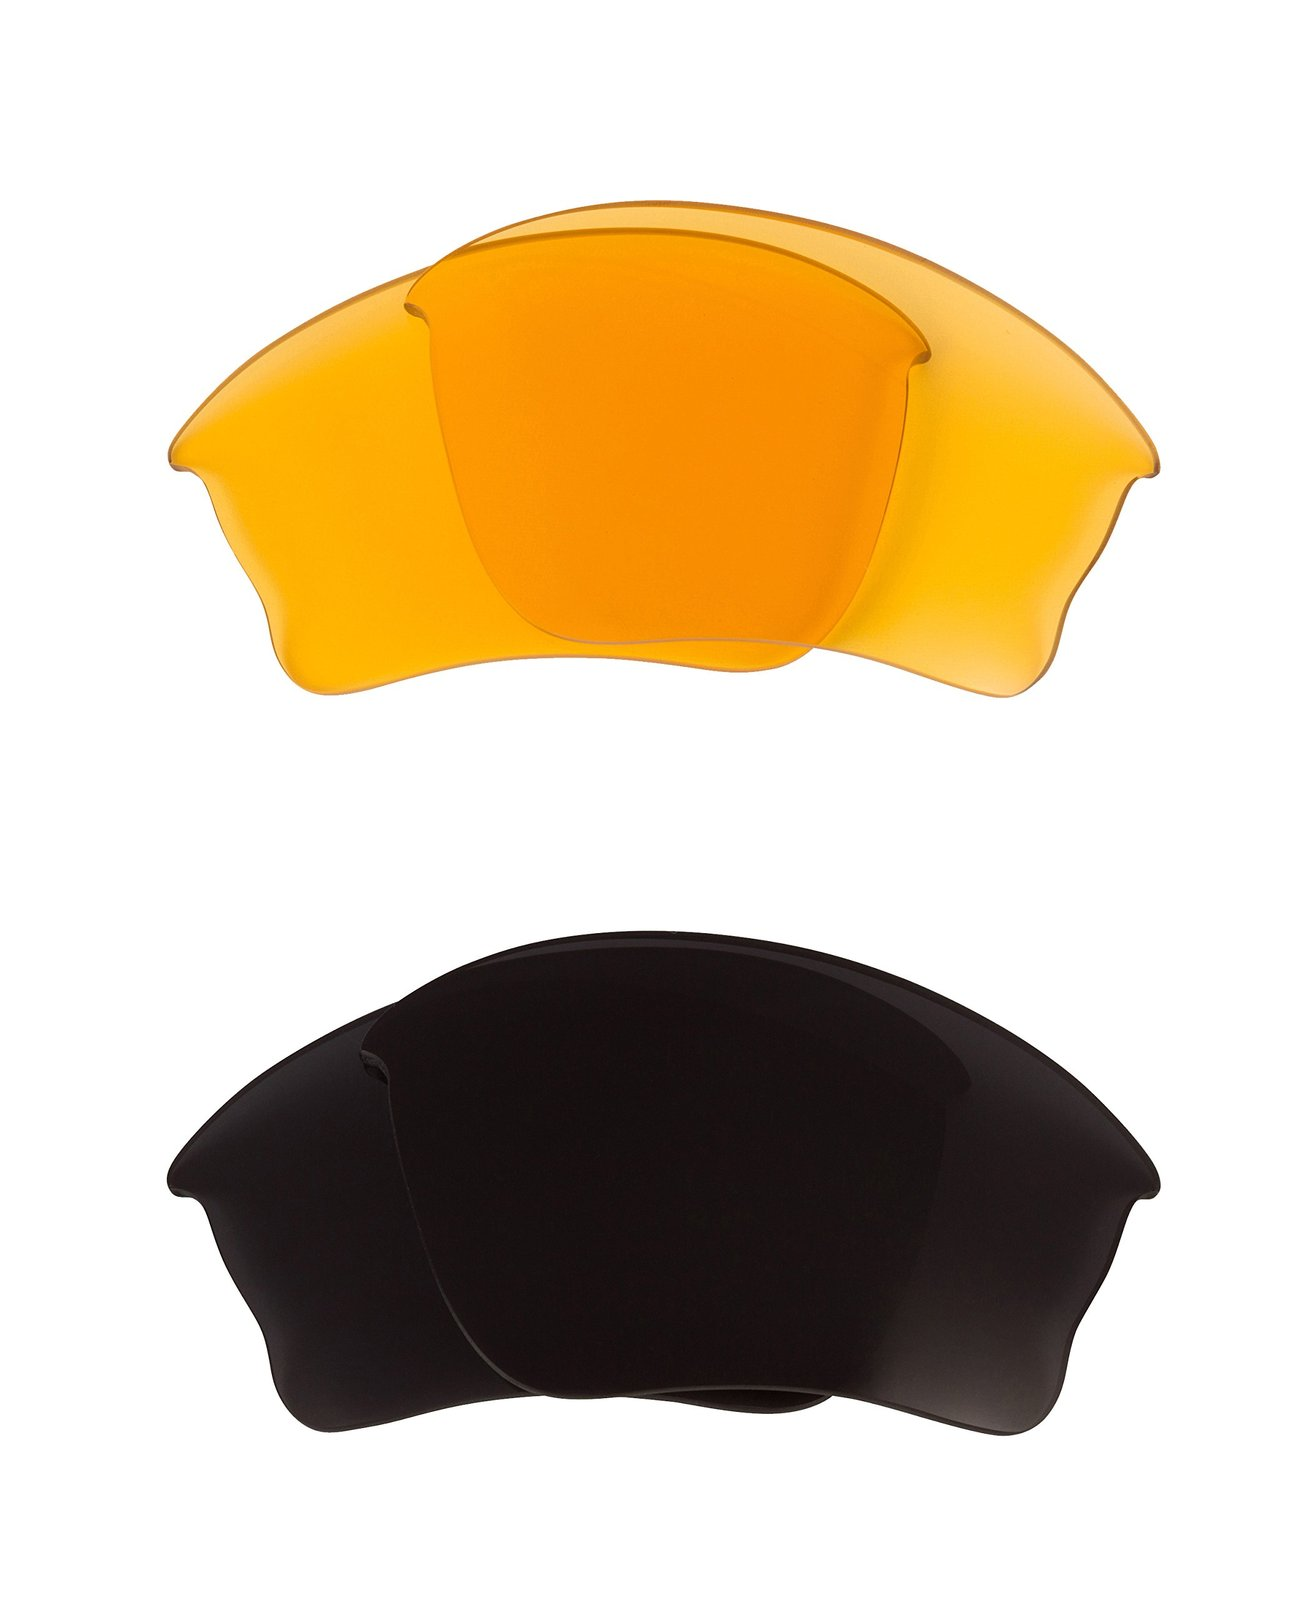 Primary image for New SEEK OPTICS Replacement Lenses Oakley HALF JACKET XLJ - Black HI Yellow